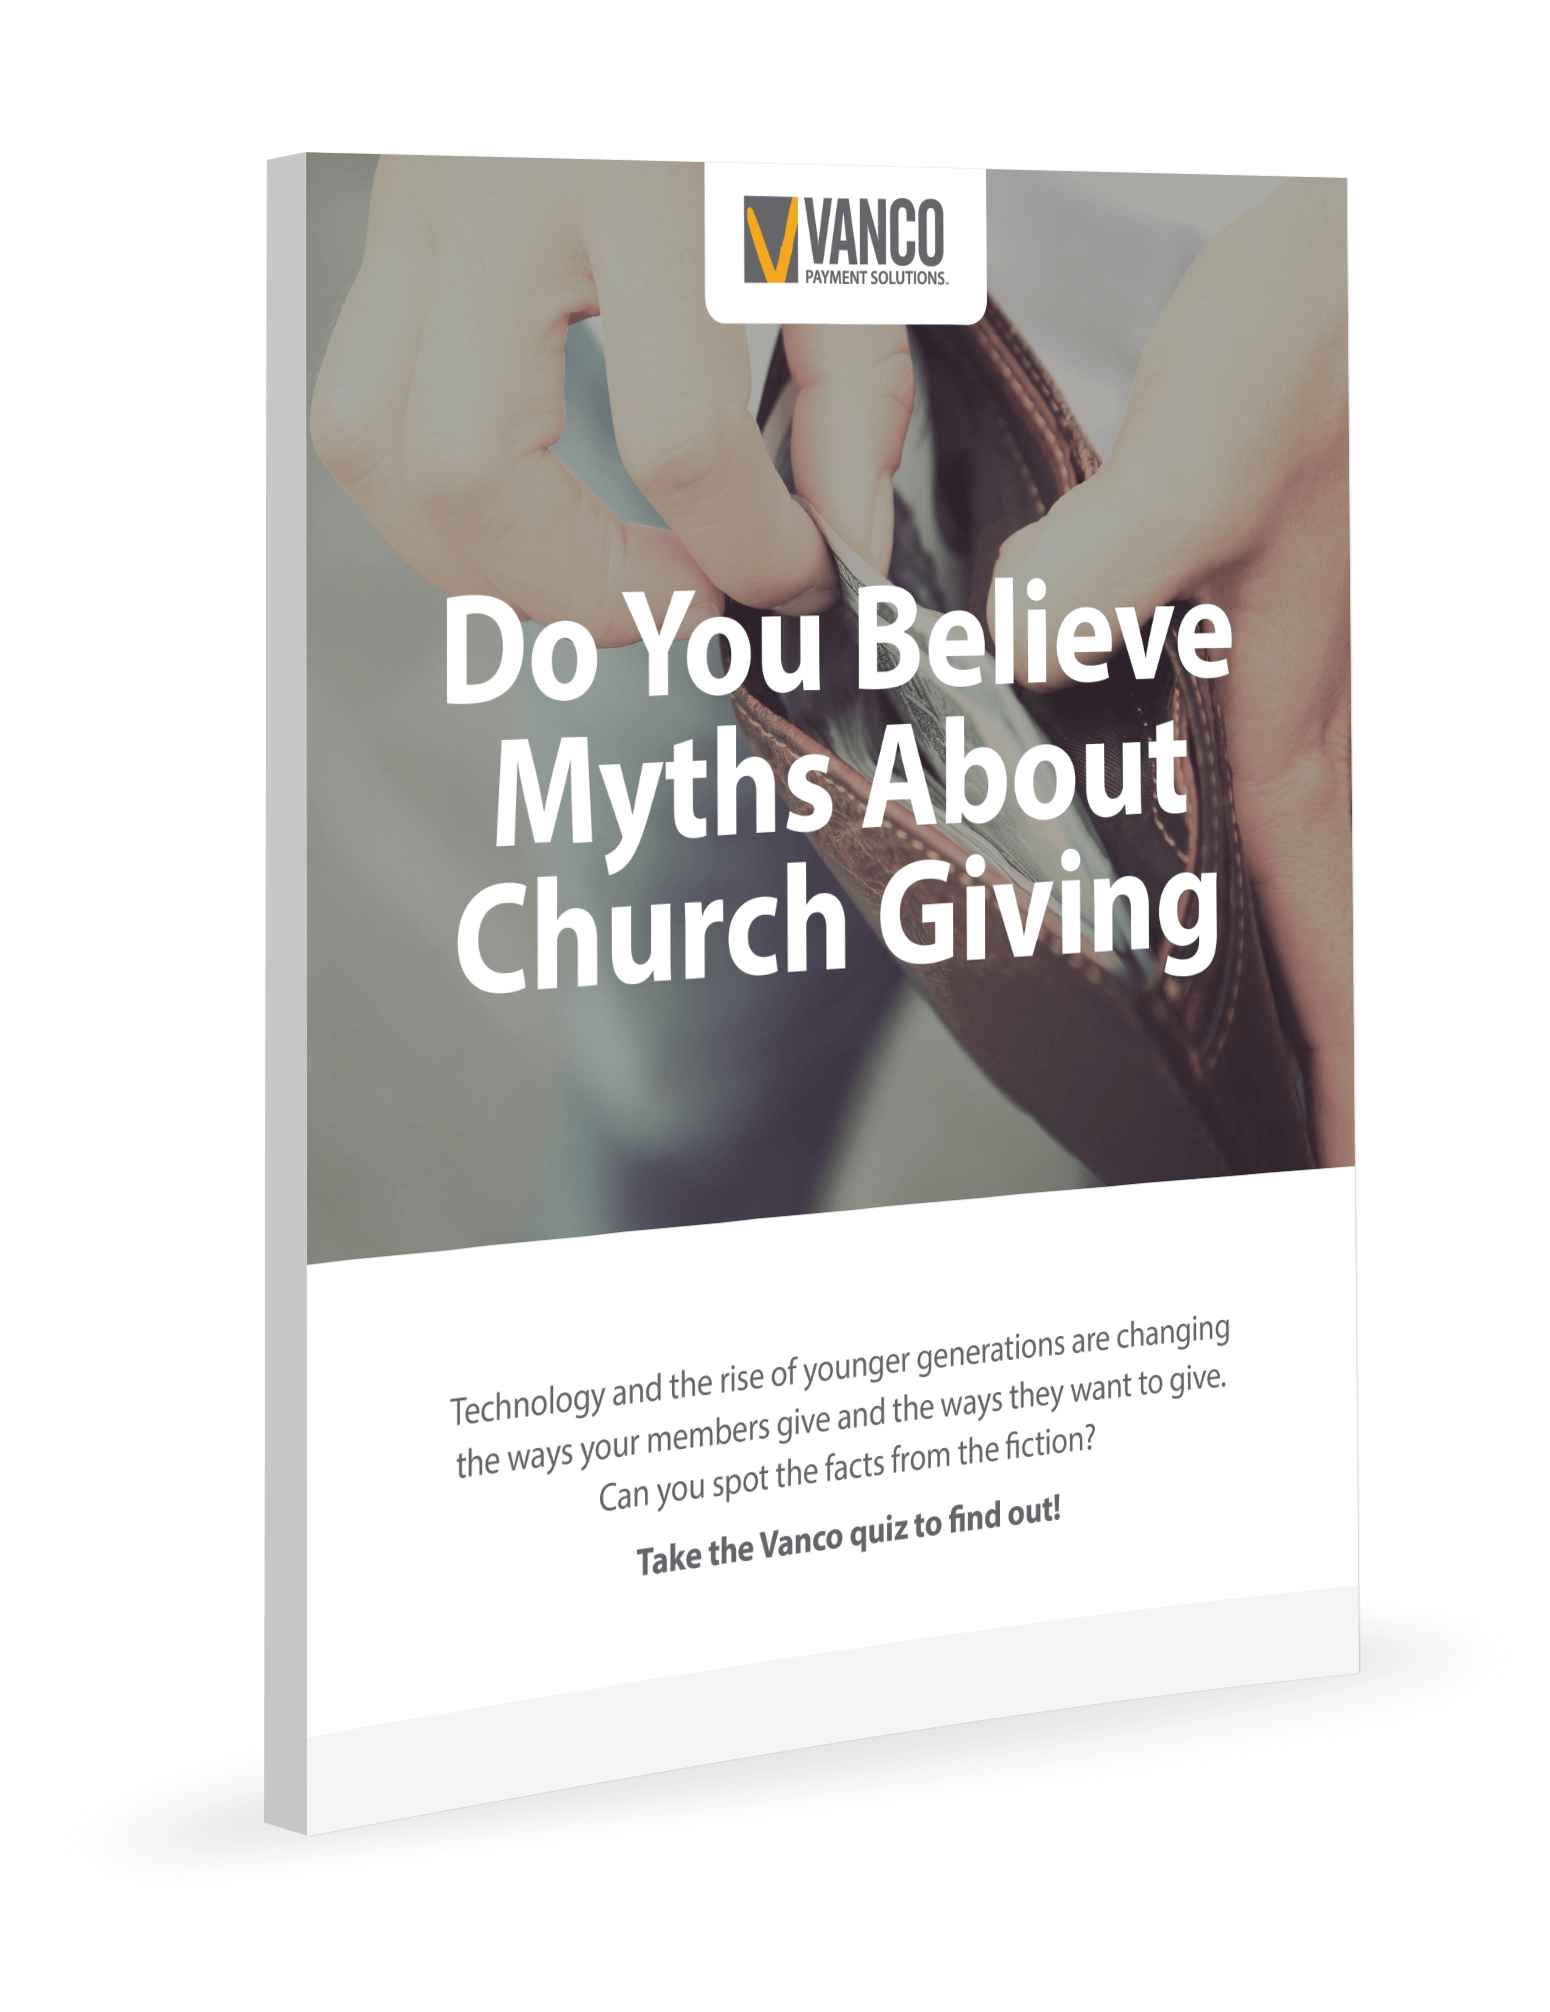 Do you believe myths about church giving